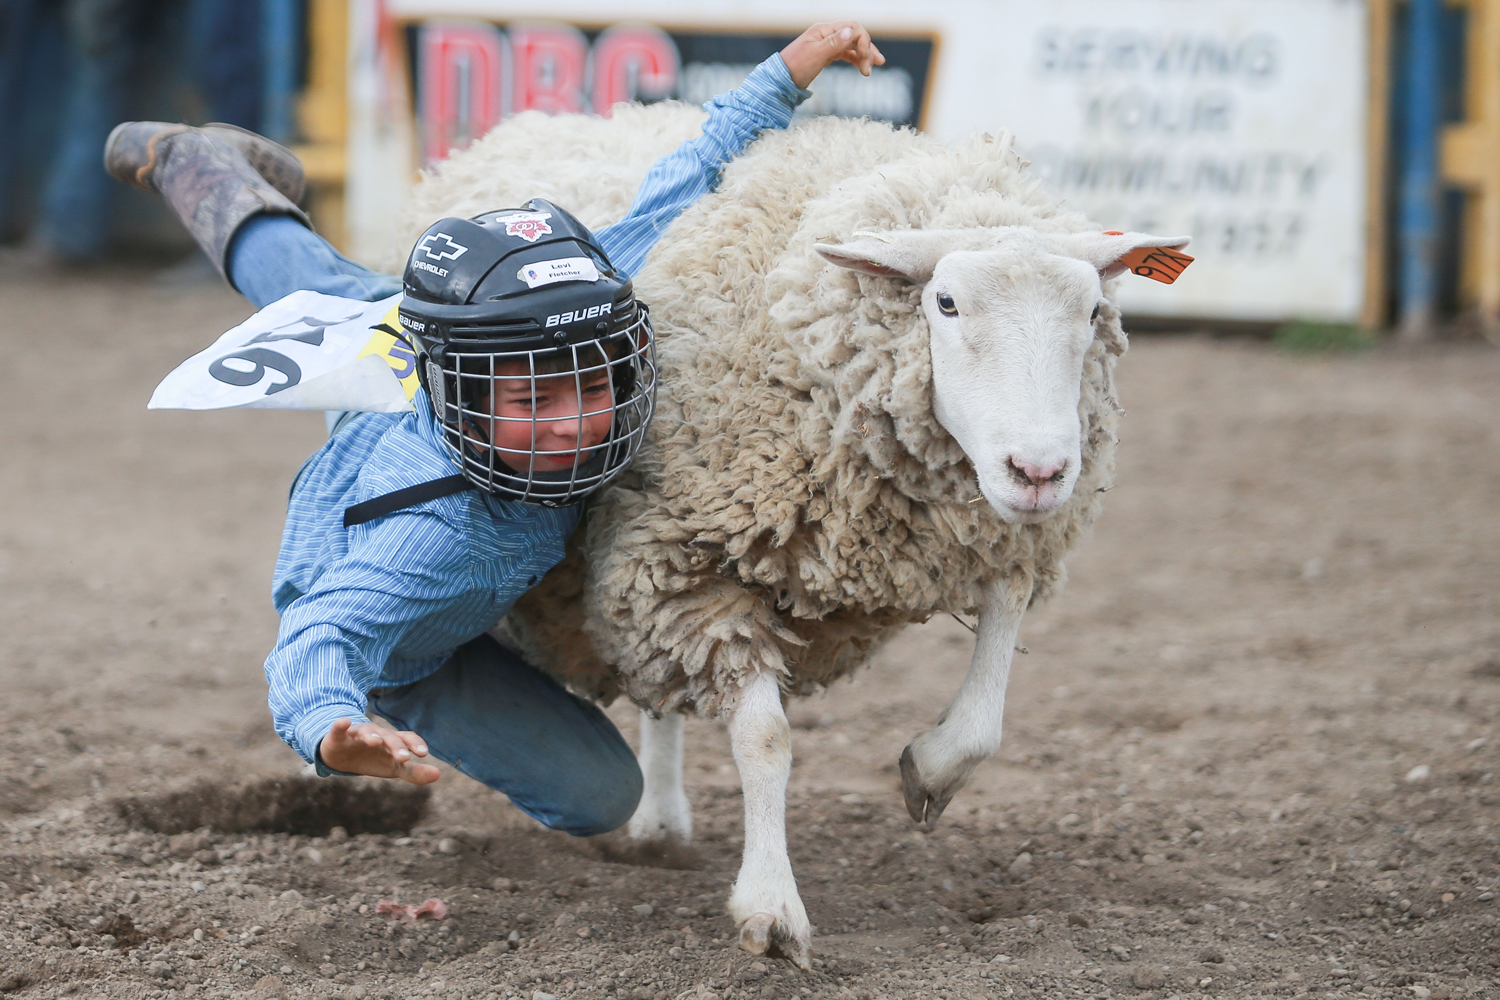 mutton-busting blue shirt.png